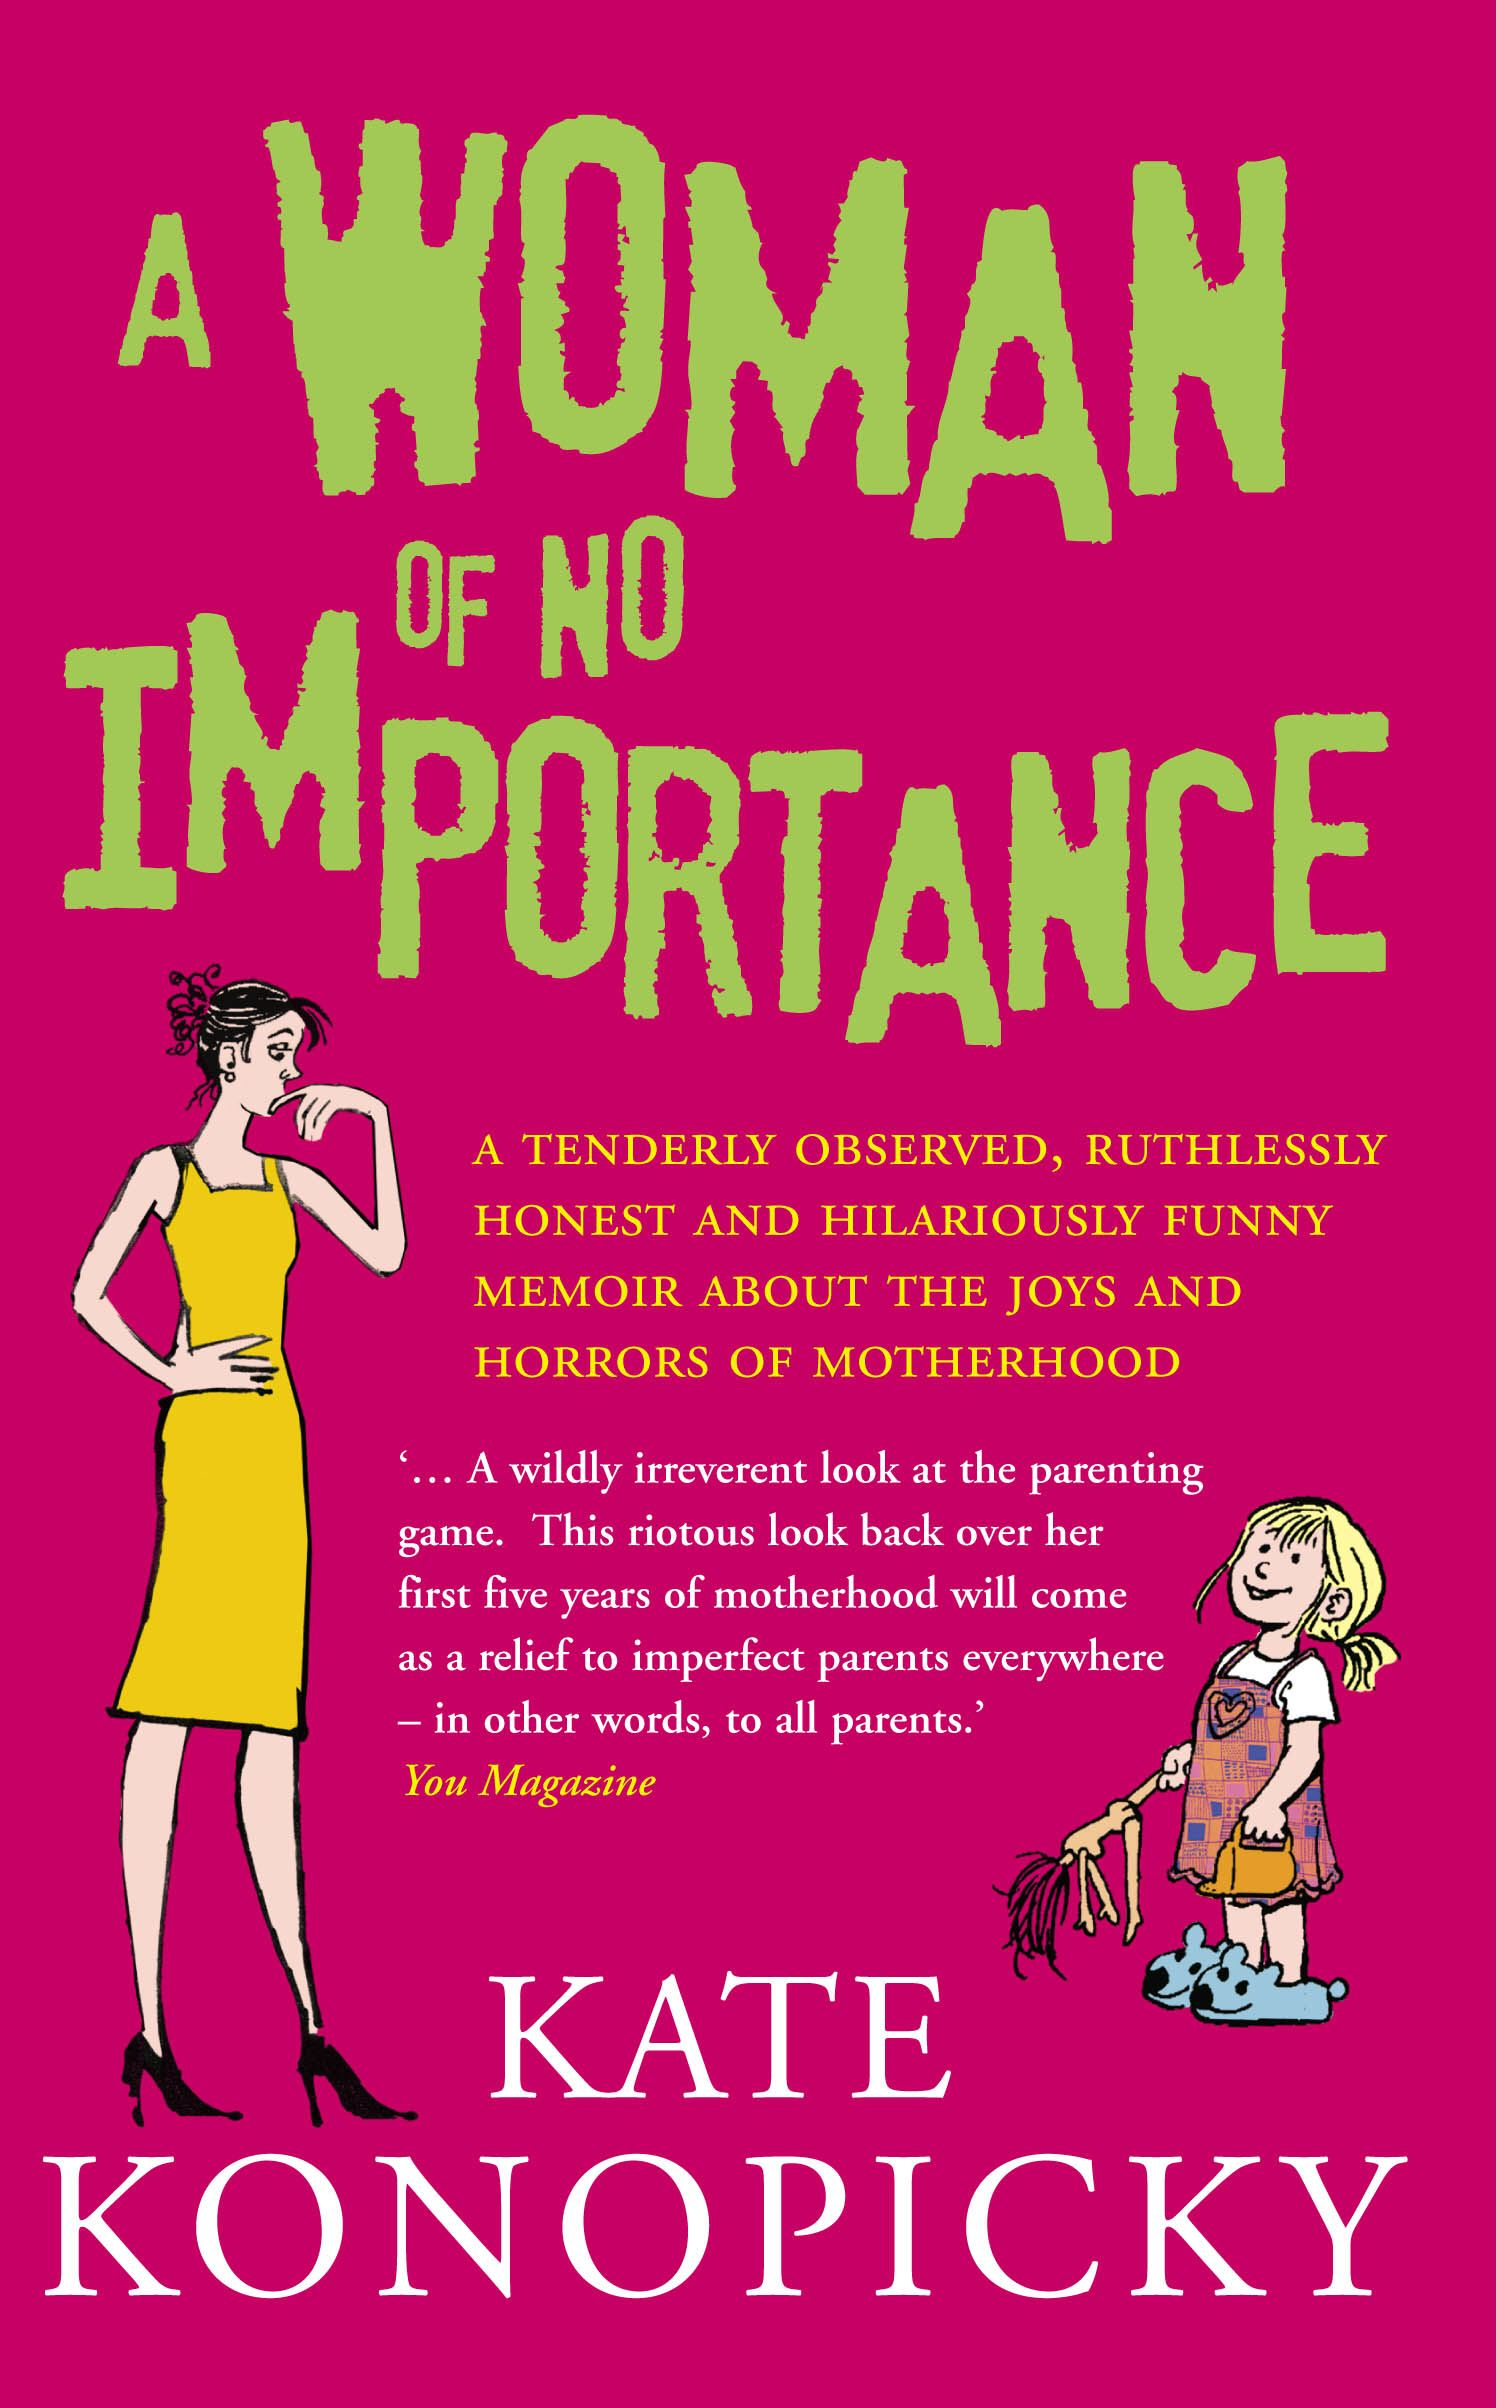 A Woman Of No Importance A tenderly observed,  ruthlessly honest and hilariously funny memoir about the joys and horrors of motherhood